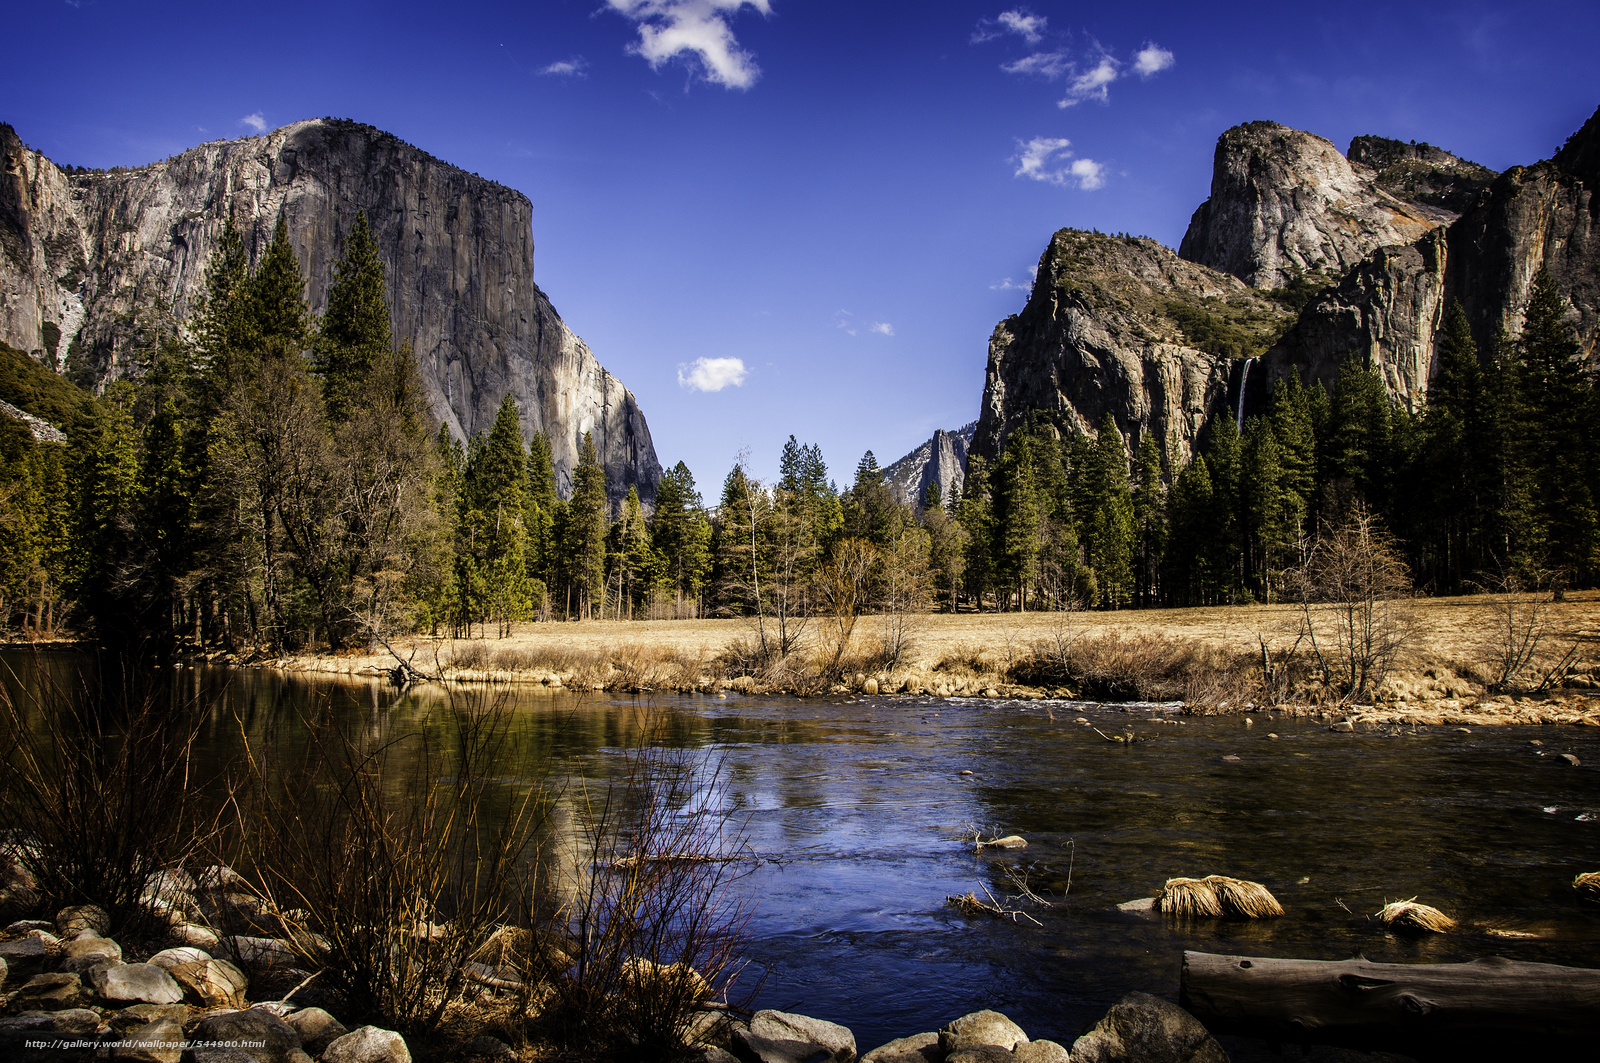 Download Wallpaper Yosemite 1600x1063